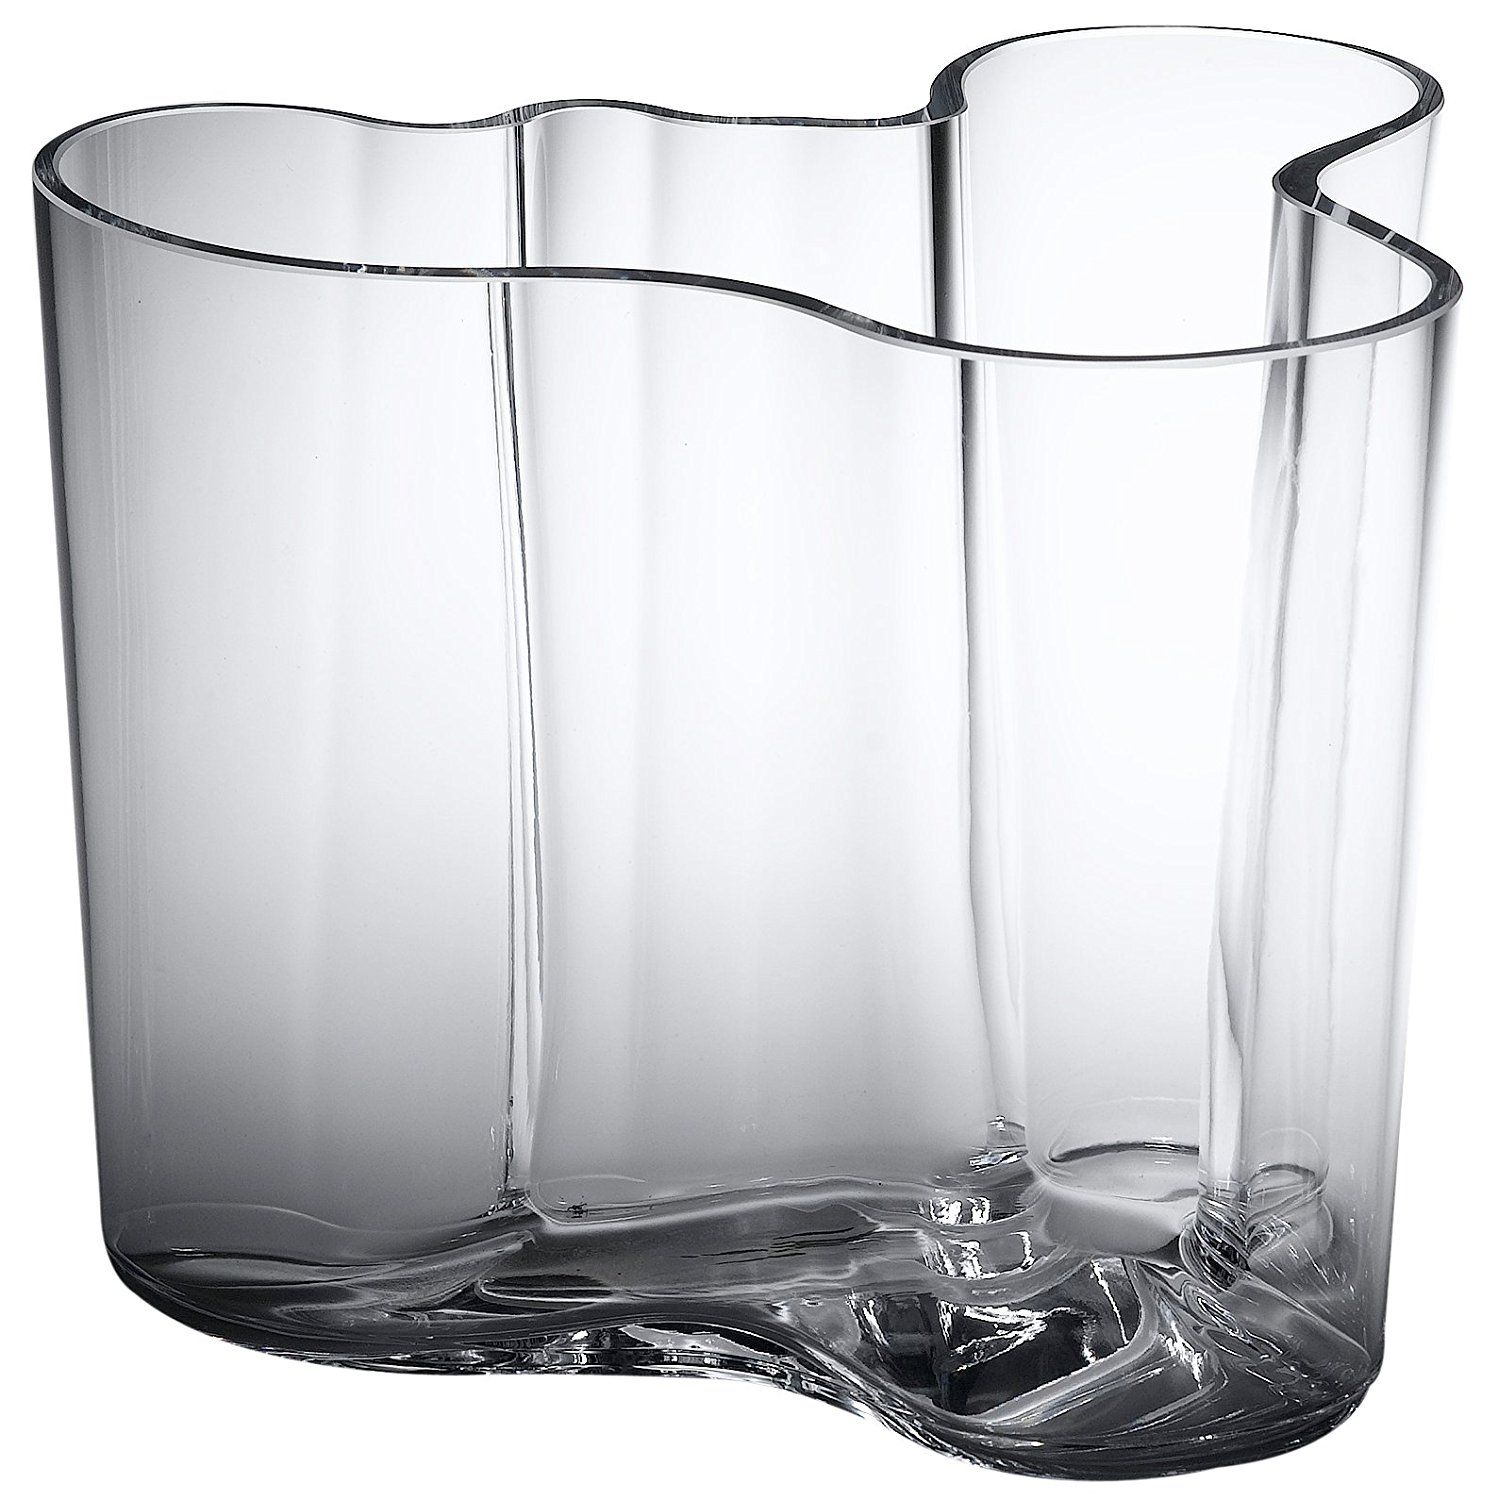 Iittala Aalto 6 1 4 Inch Glass Vase Check This Awesome